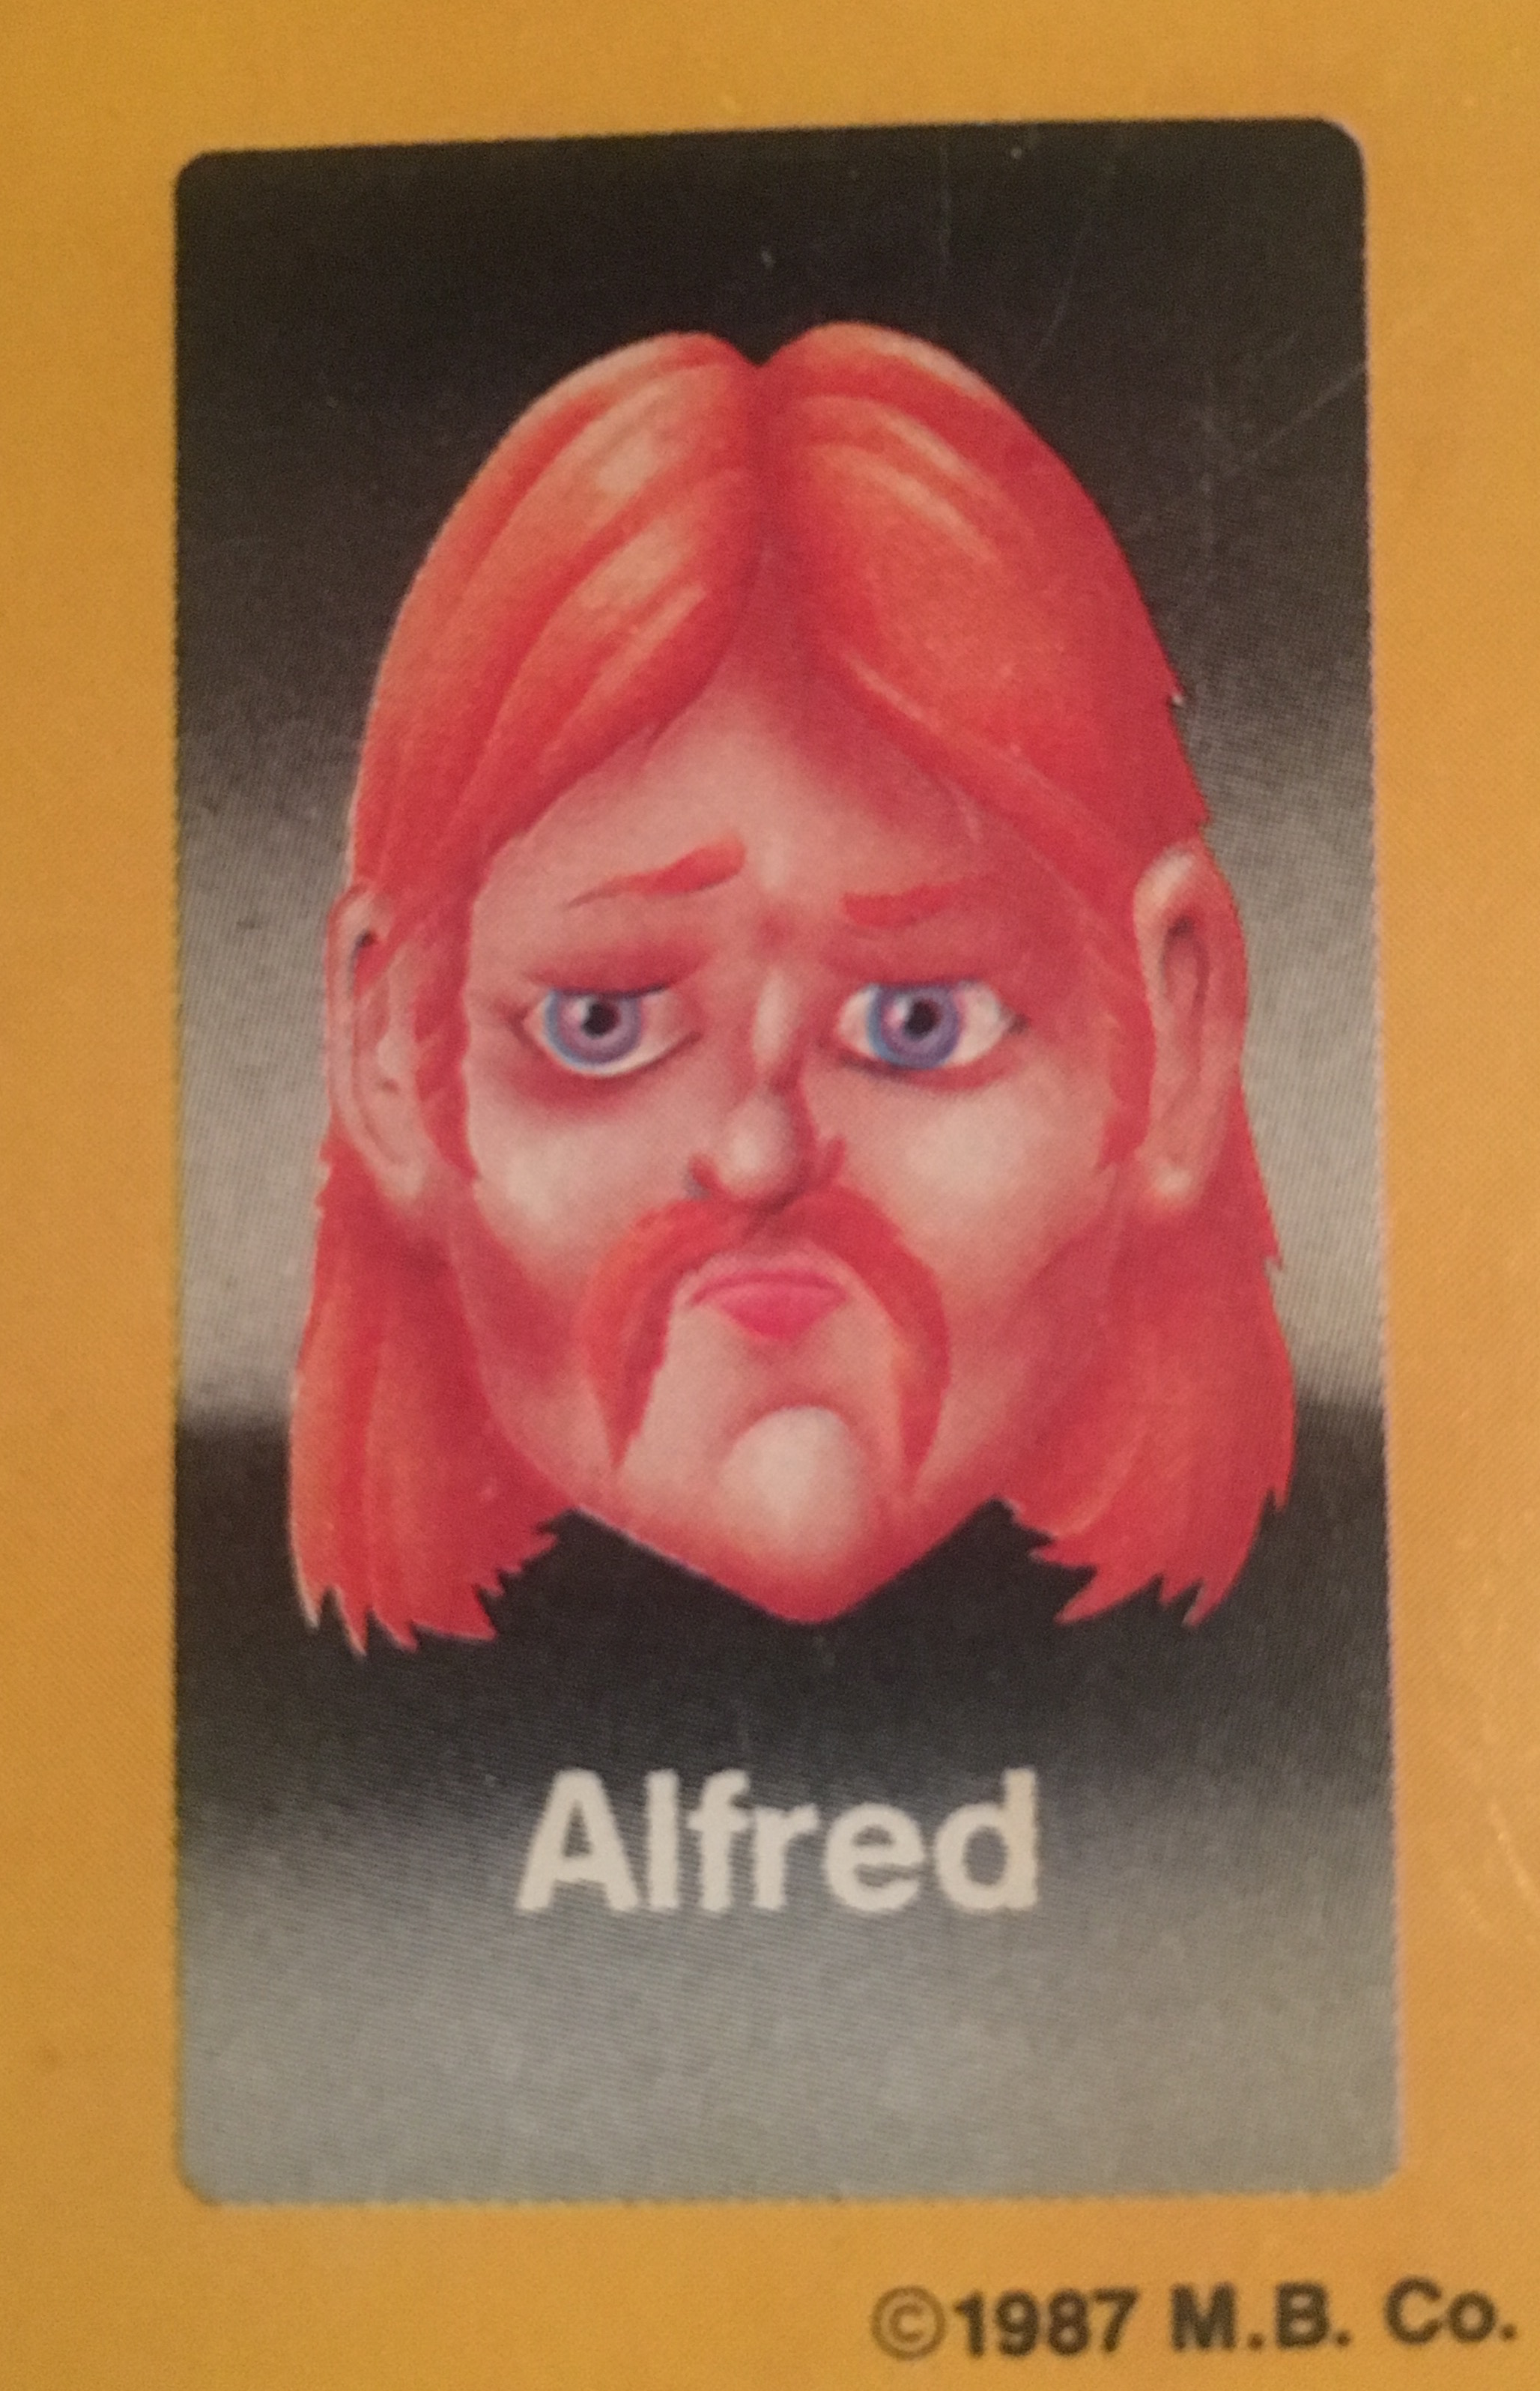 - While his sad eyes on the Guess Who?® card may have been uncomfortable for children playing the game, those same eyes were noticed by modeling agencies immediately upon the game's release. Alfred had a torrid run at the top of the fashion world, becoming much more than just another Guess Who?® face. He was also a well-known advocate for red haired people all over, publicly expressing that discrimination based on brightly colored hair had gone on far too long. He died at the age of 38 in a tragic photoshoot.